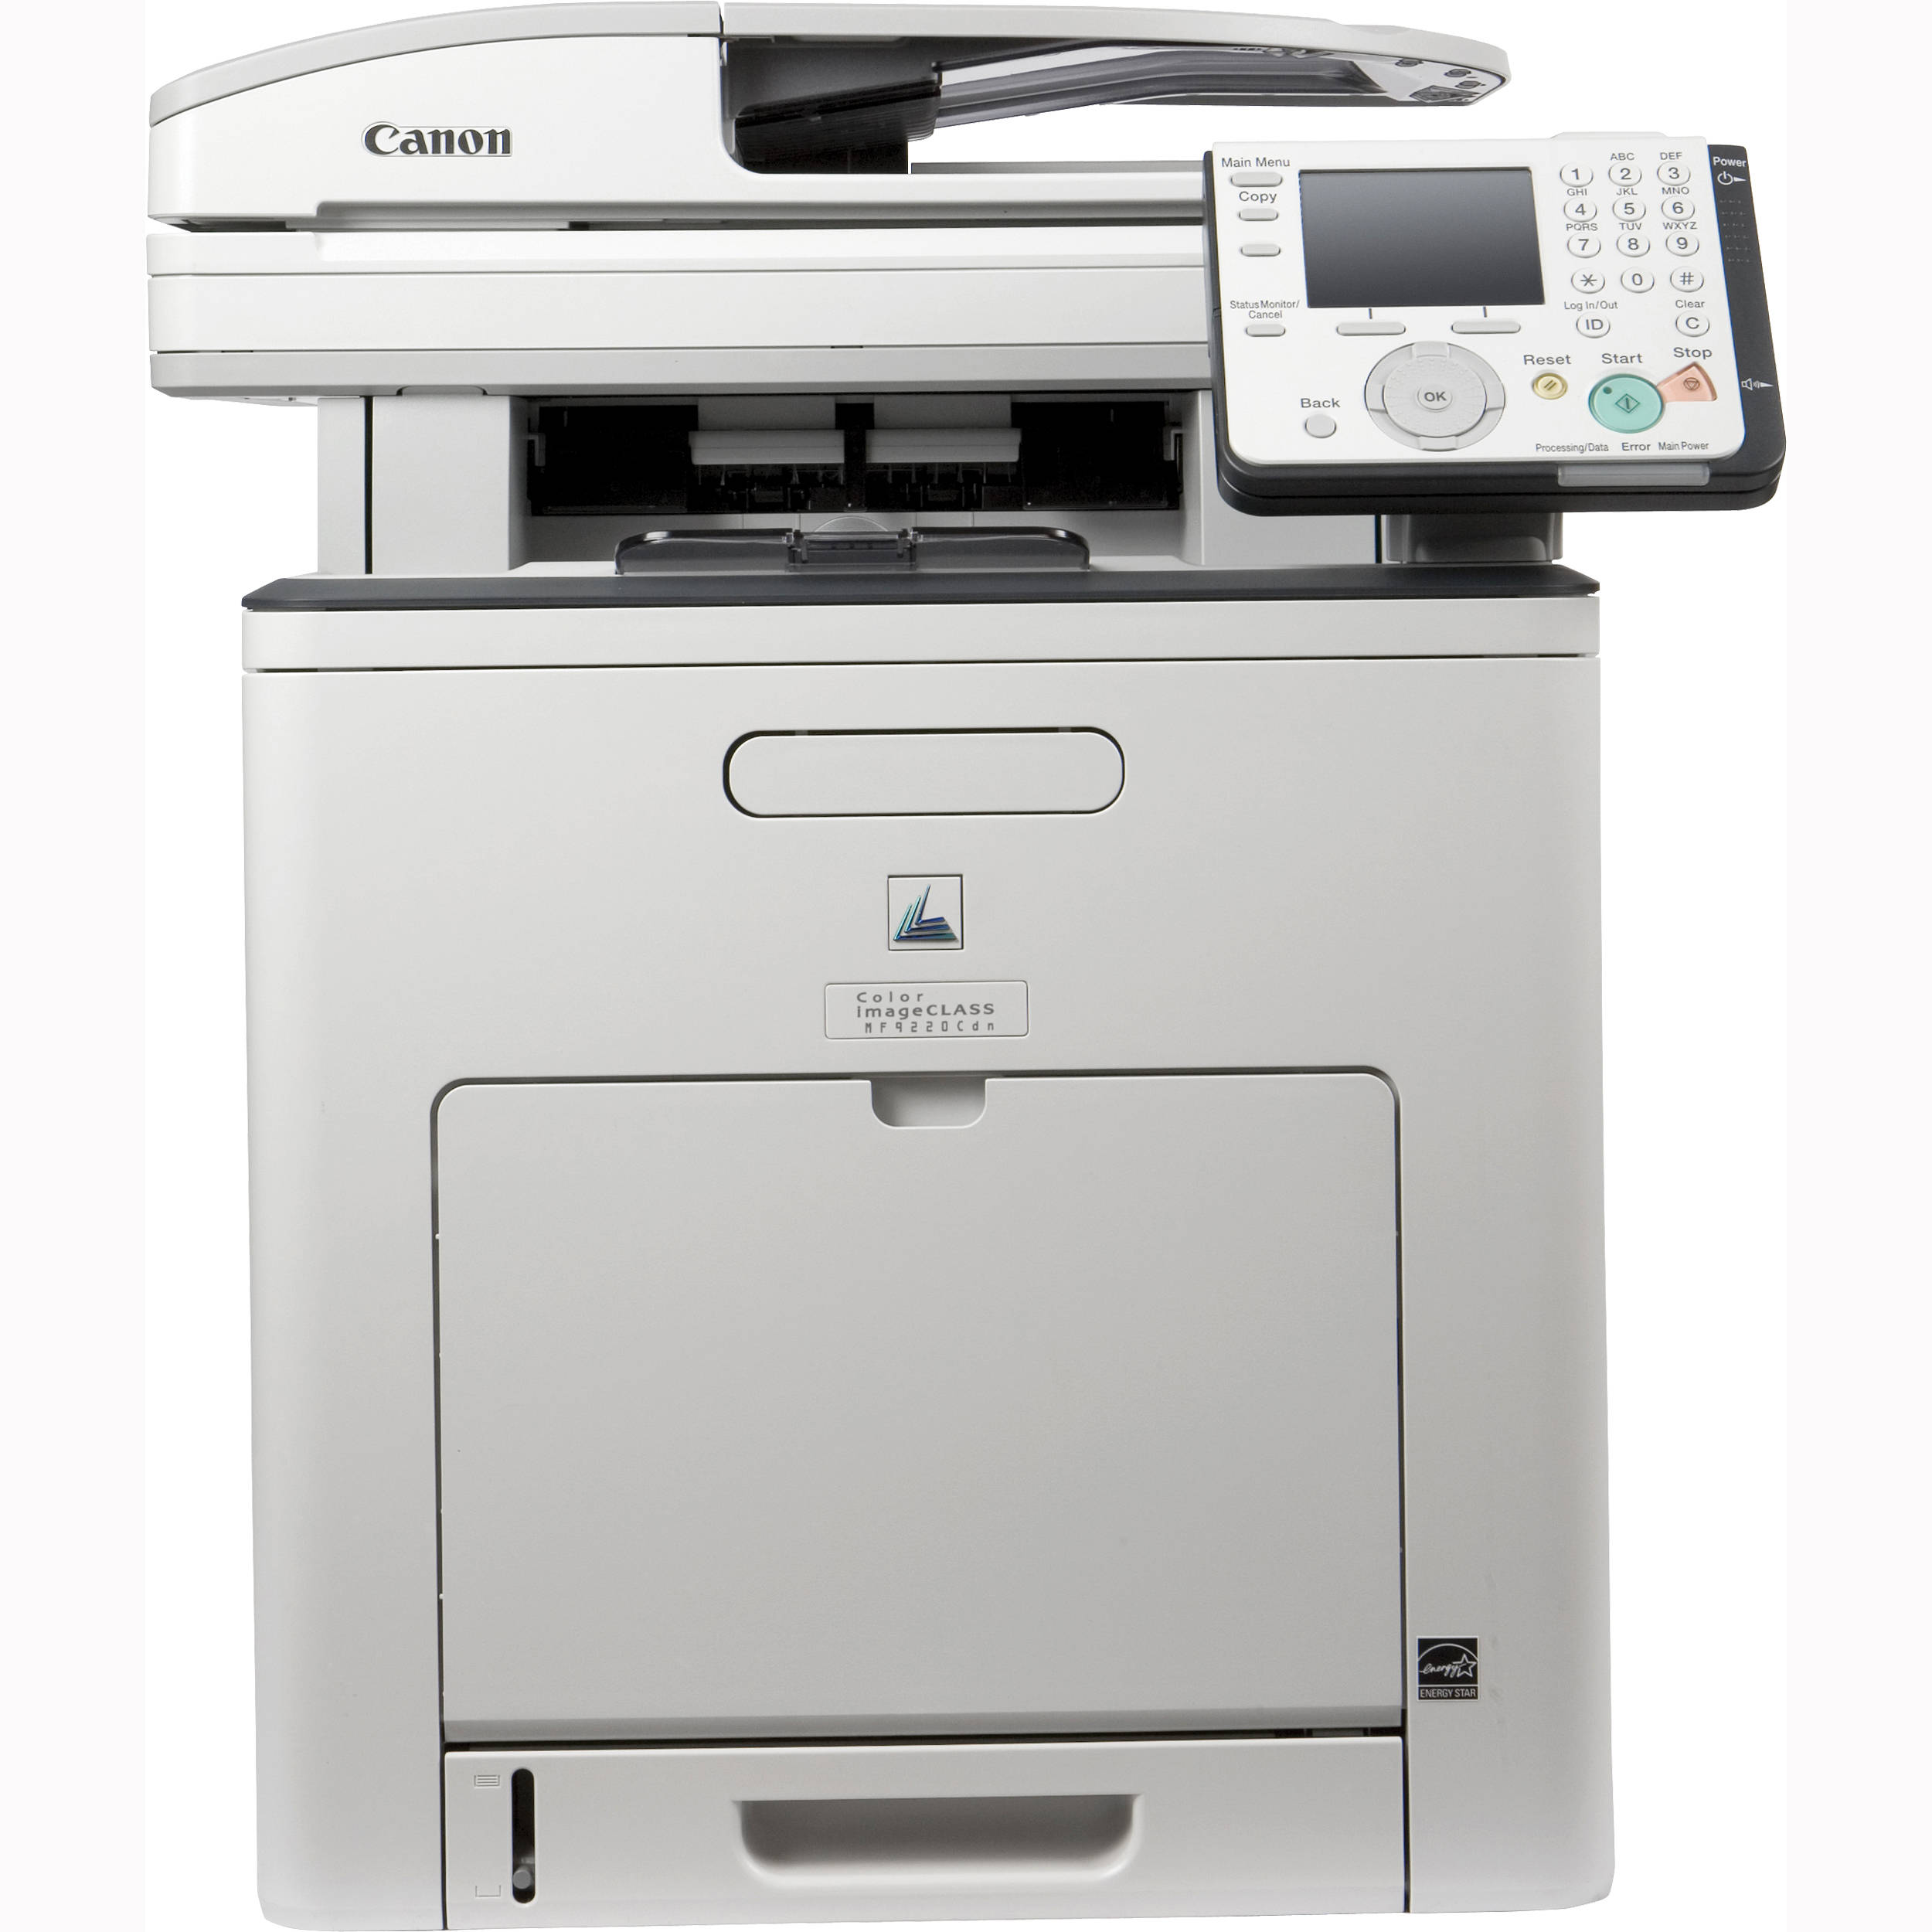 hp color laserjet 2840 all in one review rating pcmag - Hp Color Laserjet 2840